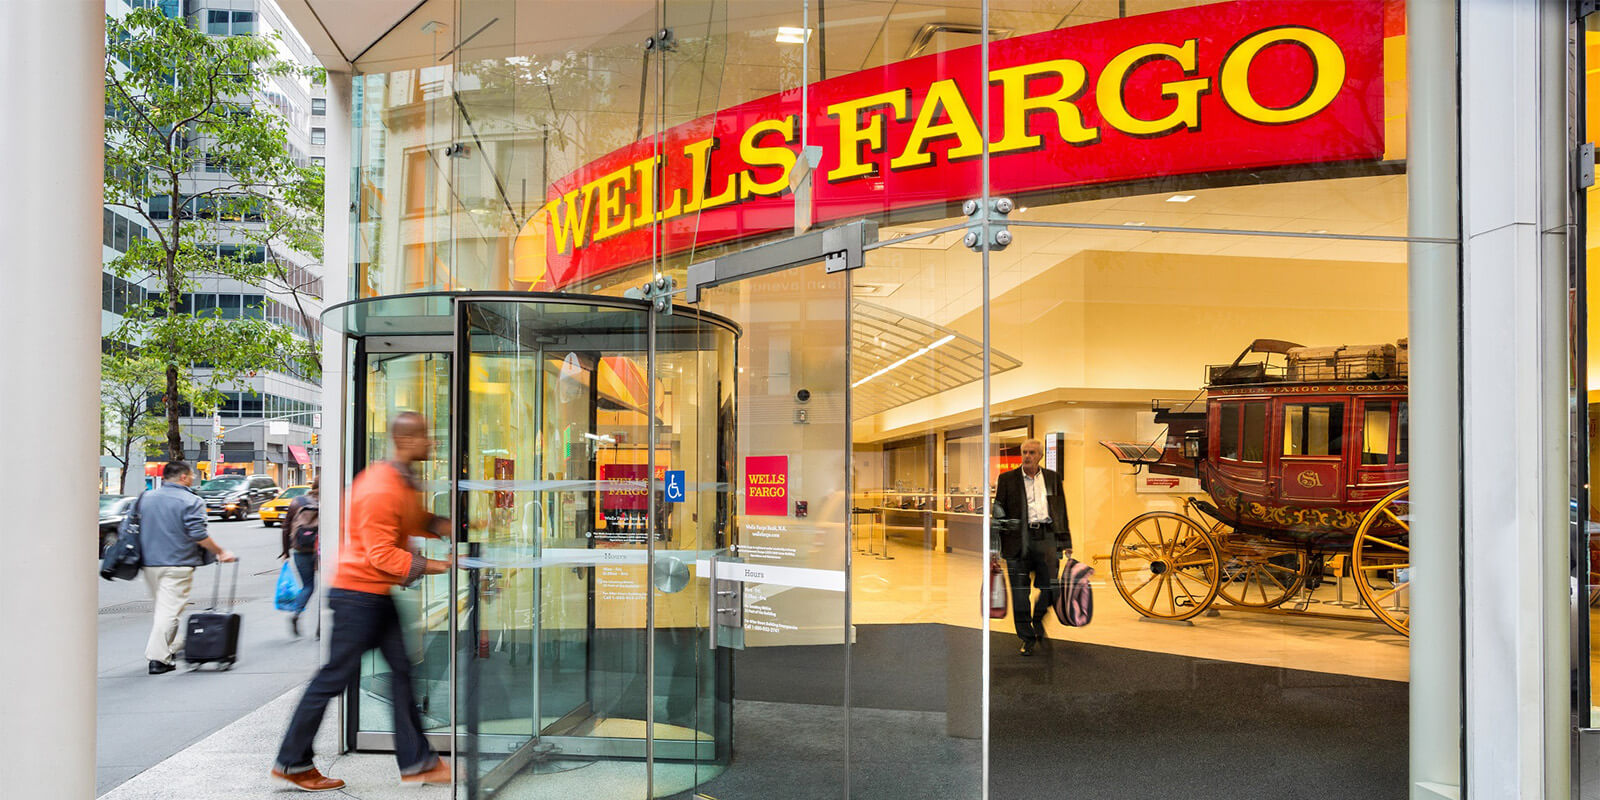 Working At Wells Fargo Jobs And Careers At Wells Fargo